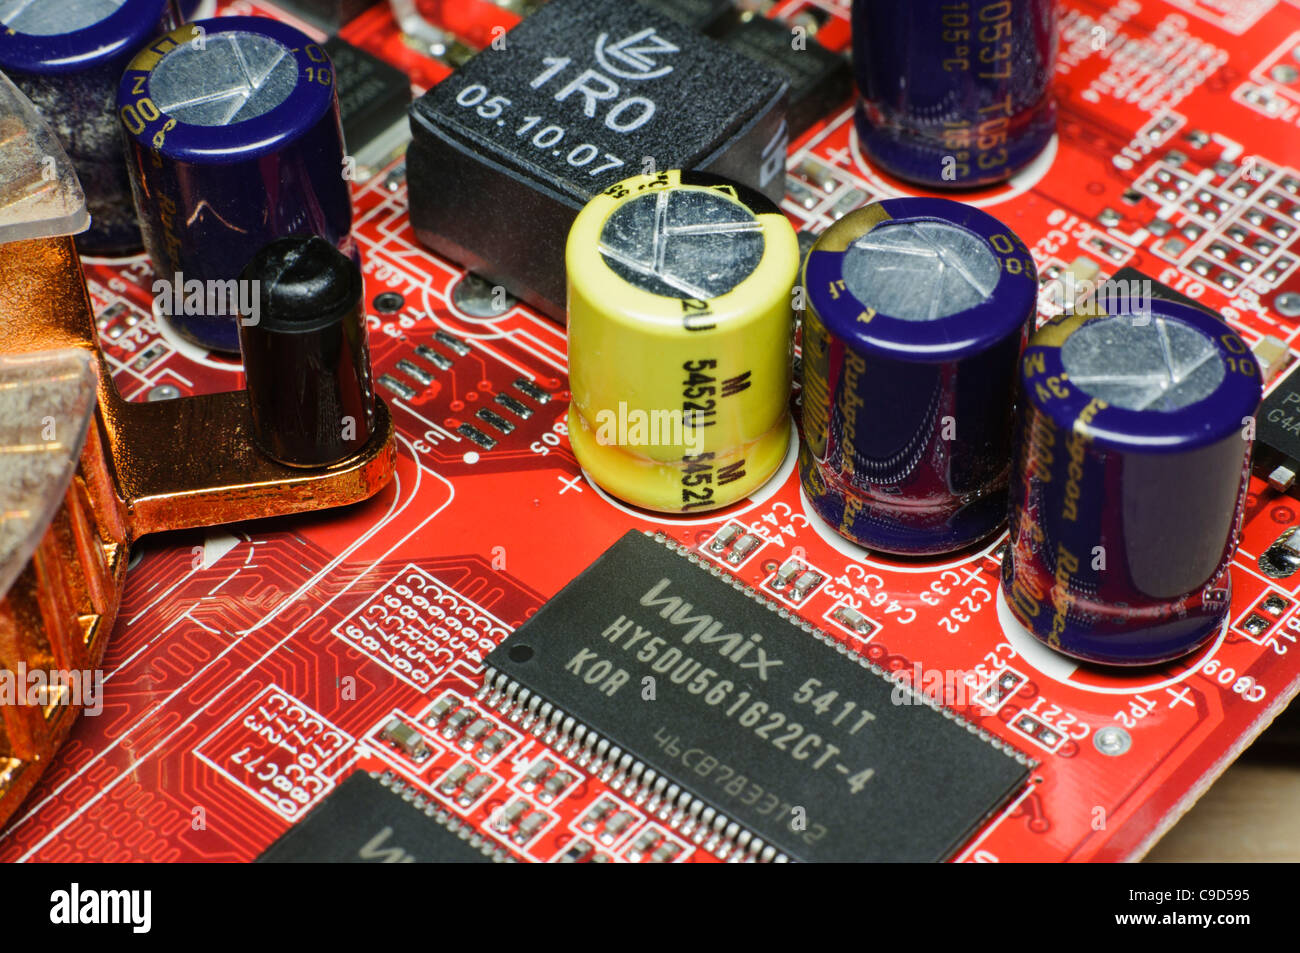 Electronic circuit board with capacitors, integrated circuits and other components. - Stock Image